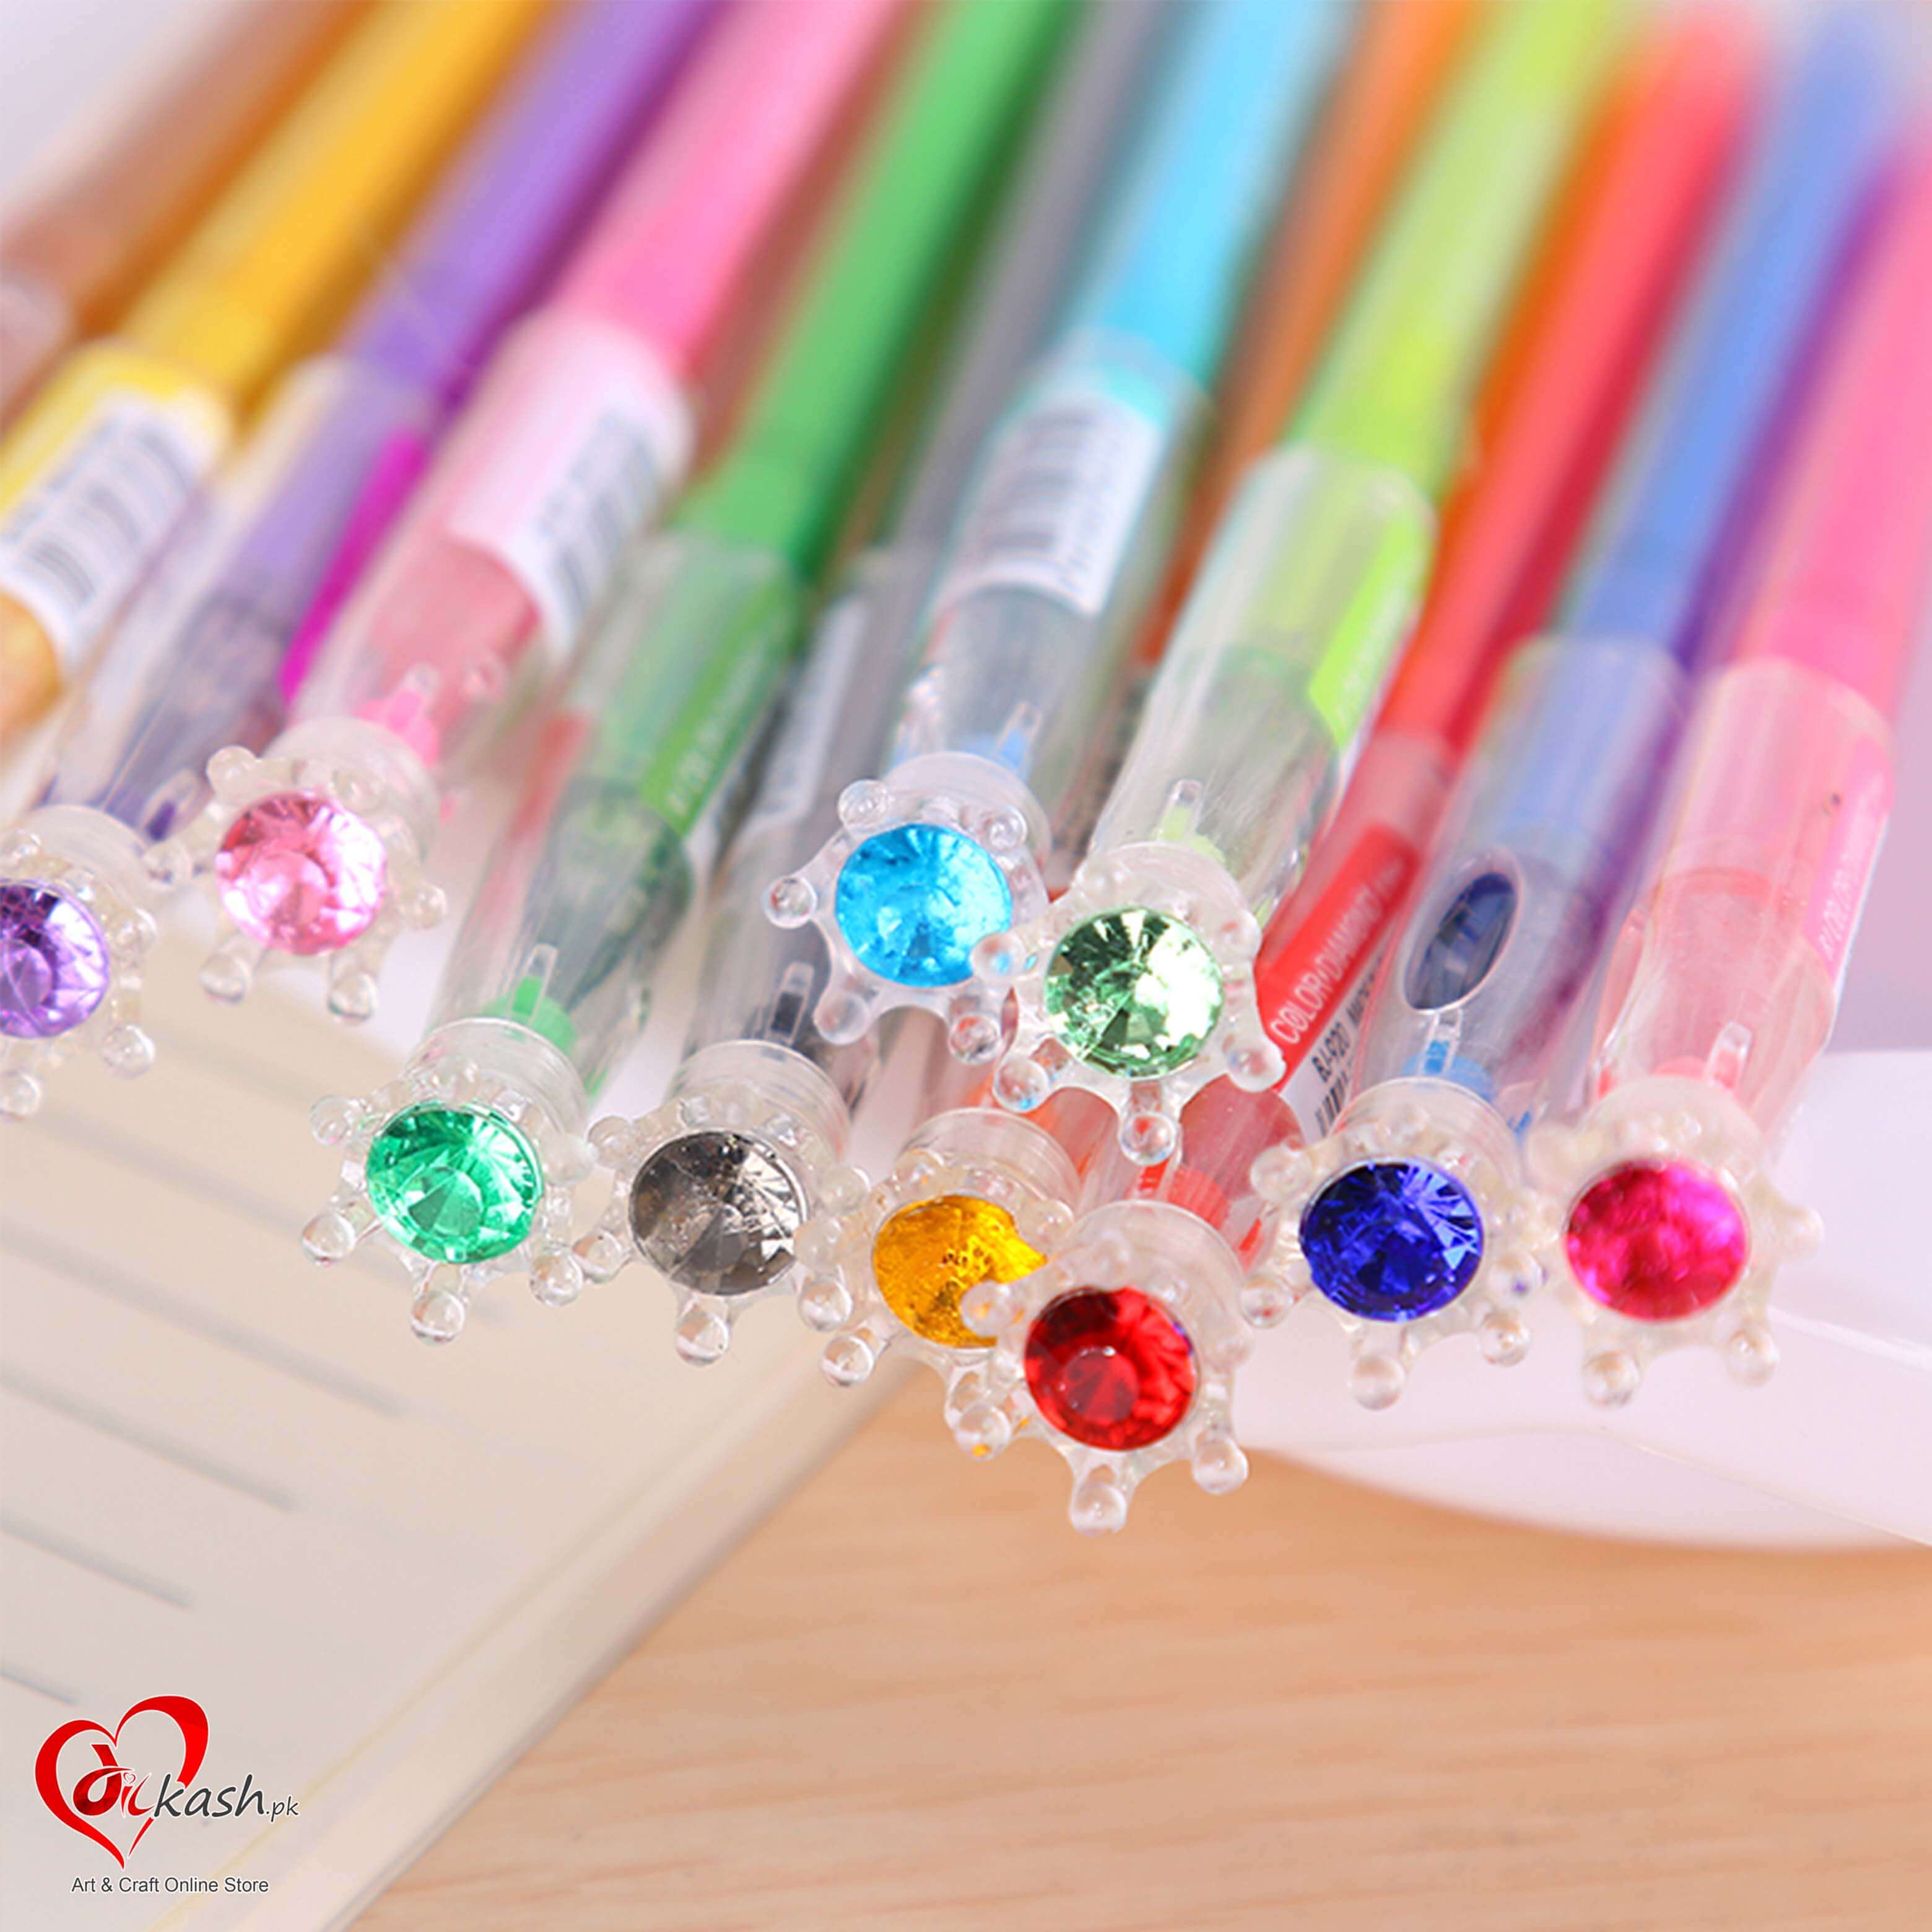 south-korea-stationery-colored-diamond-head-neutral-pen-crown-signature-pen-0-5mm12m